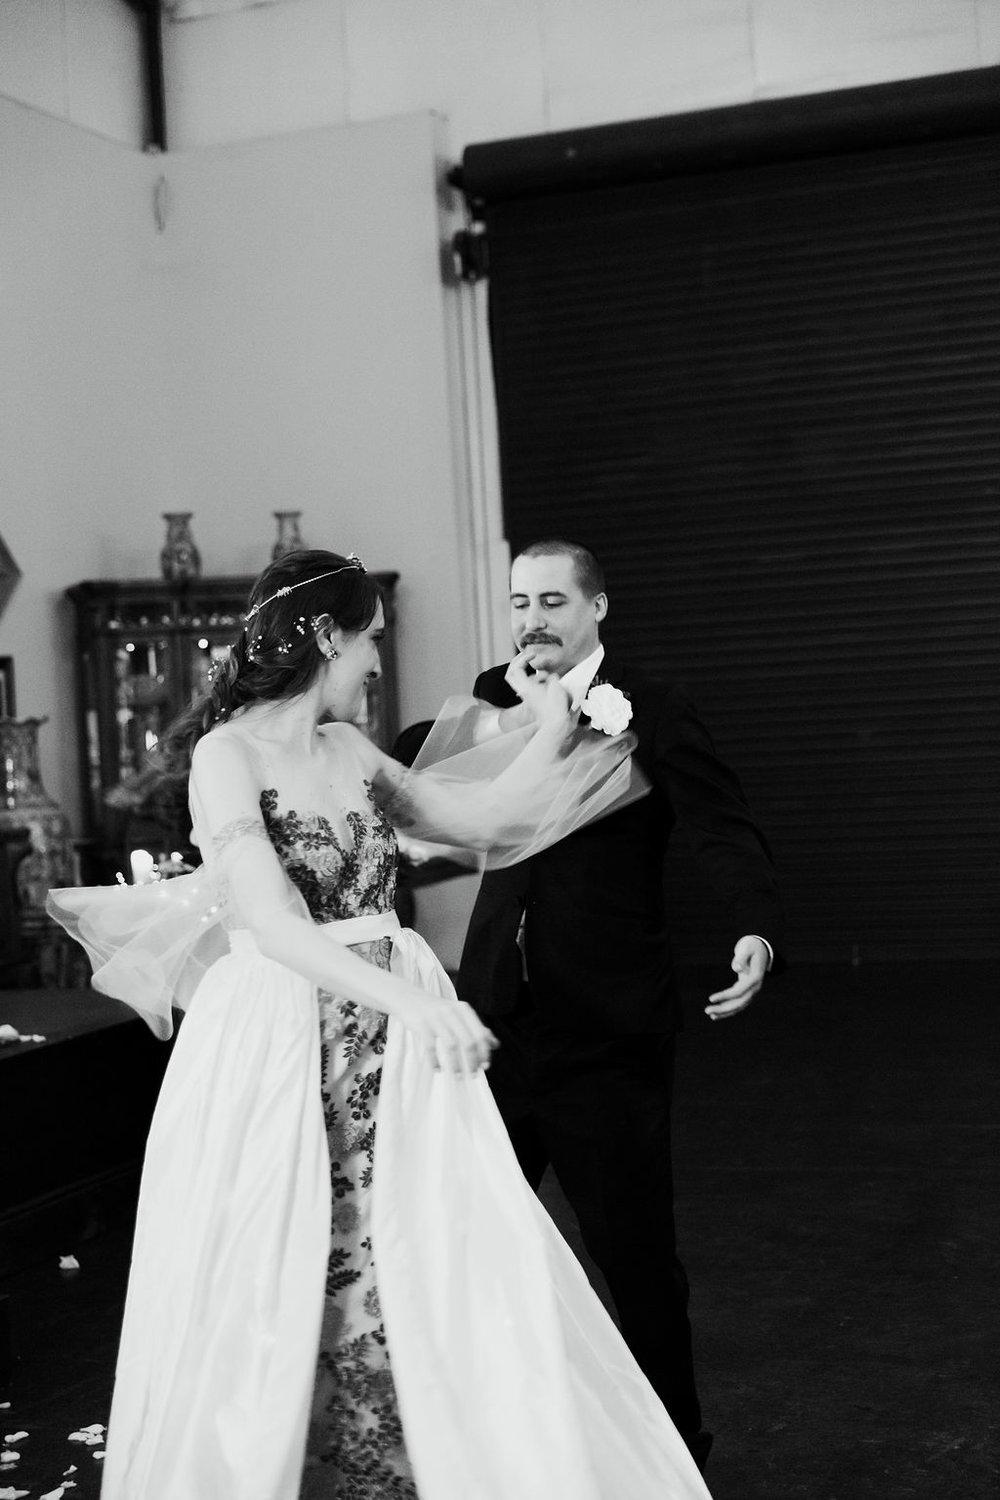 IMGL7203Desiree-Eric-wedding-vaniaelisephotography.jpg